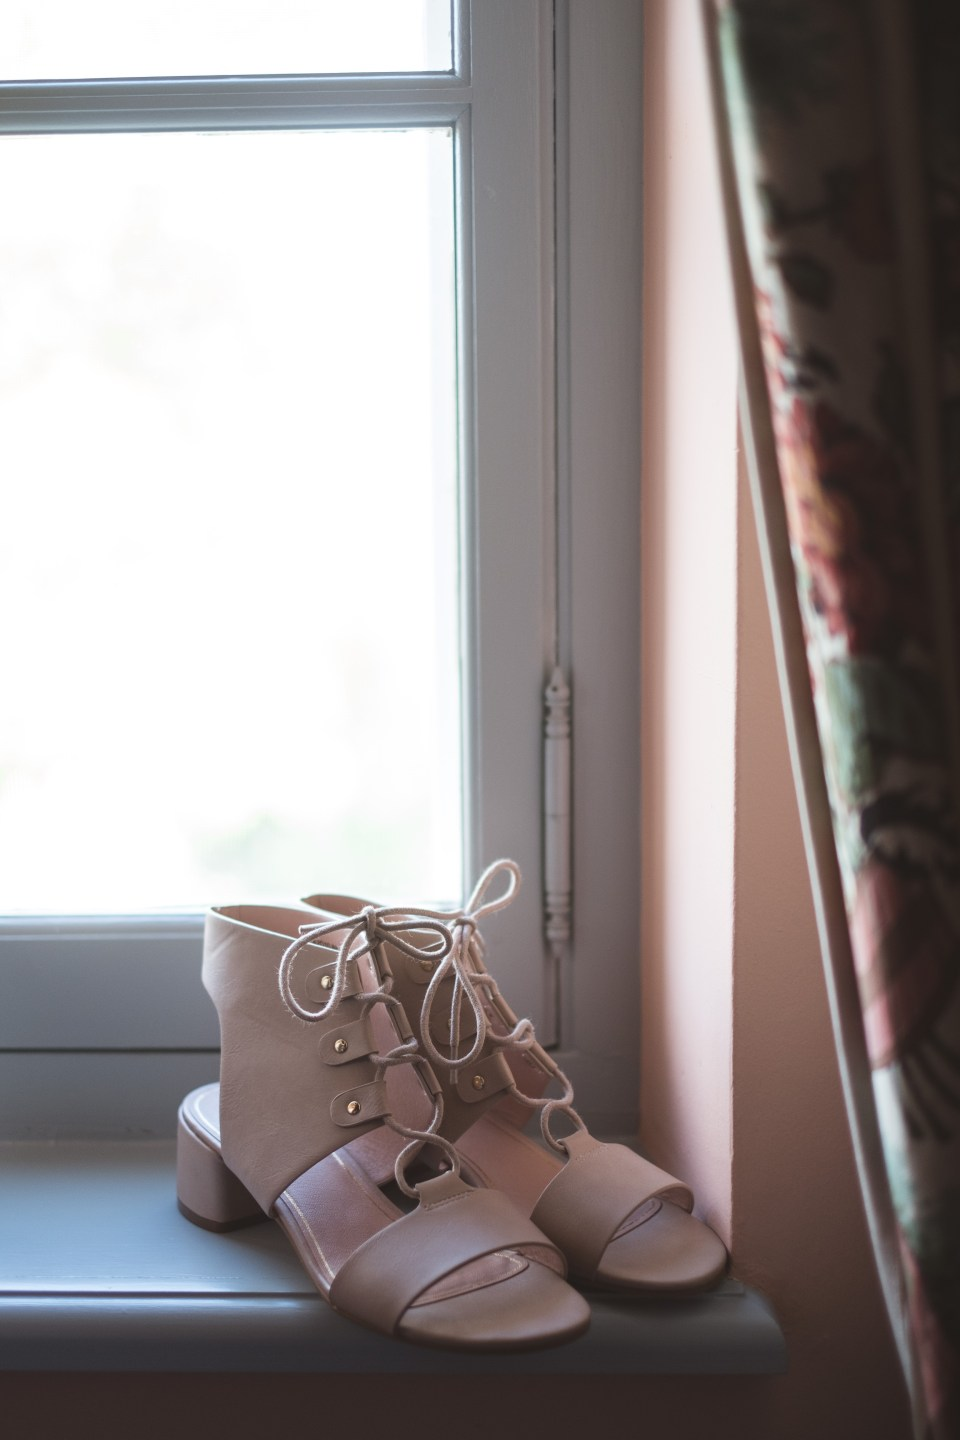 mercredie-mariage-blog-theme-chaussures-sandales-mariage-mariee-topshop-nude-rose-parle-baby-pink-dance